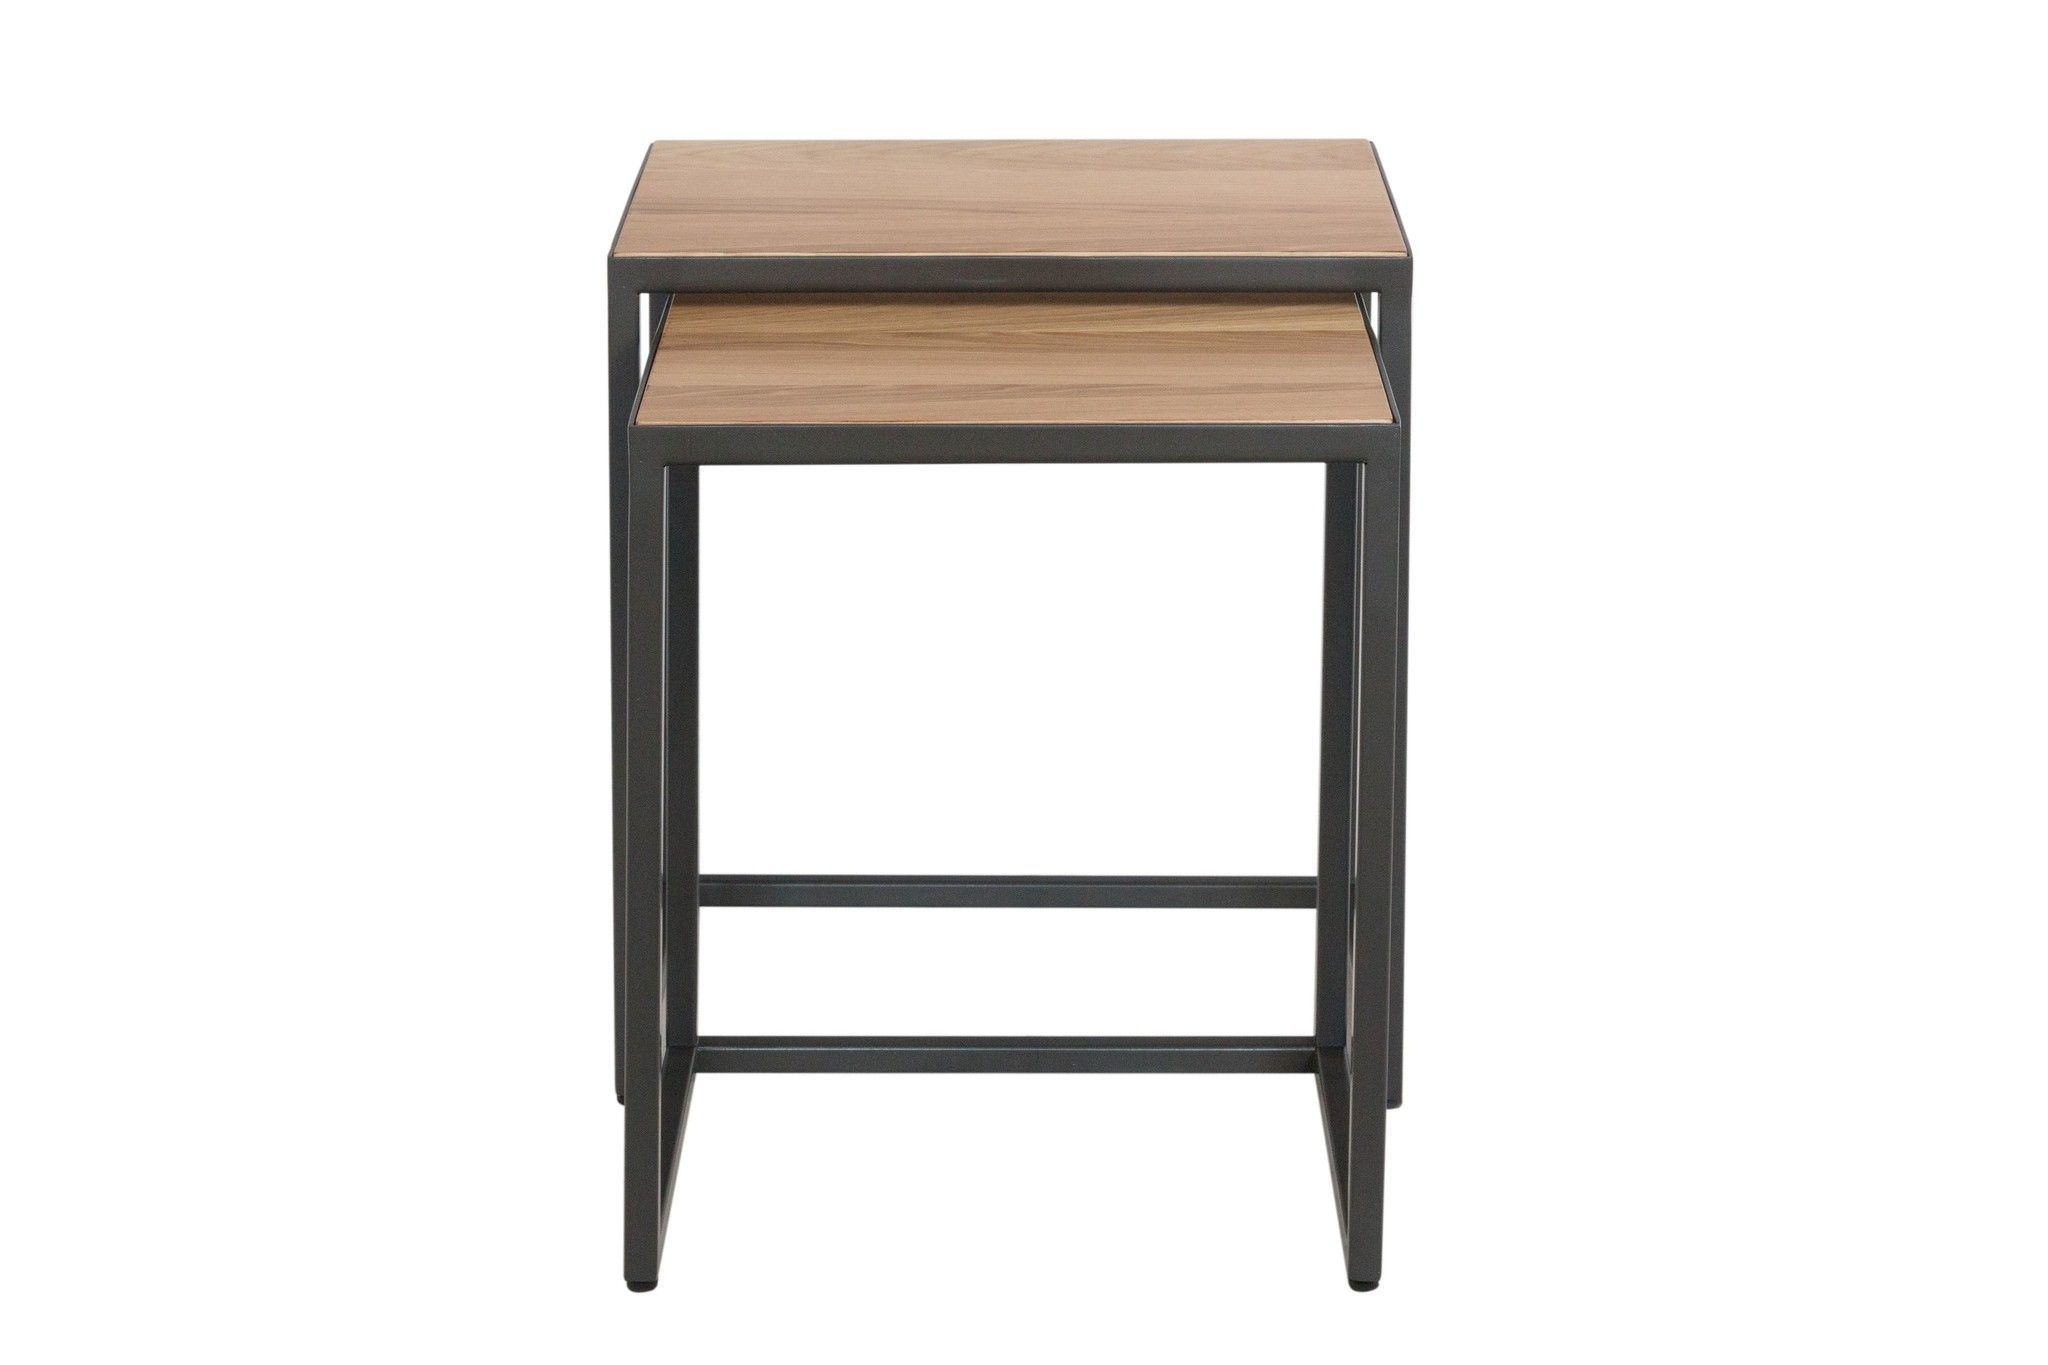 Urban Style Nest of Tables